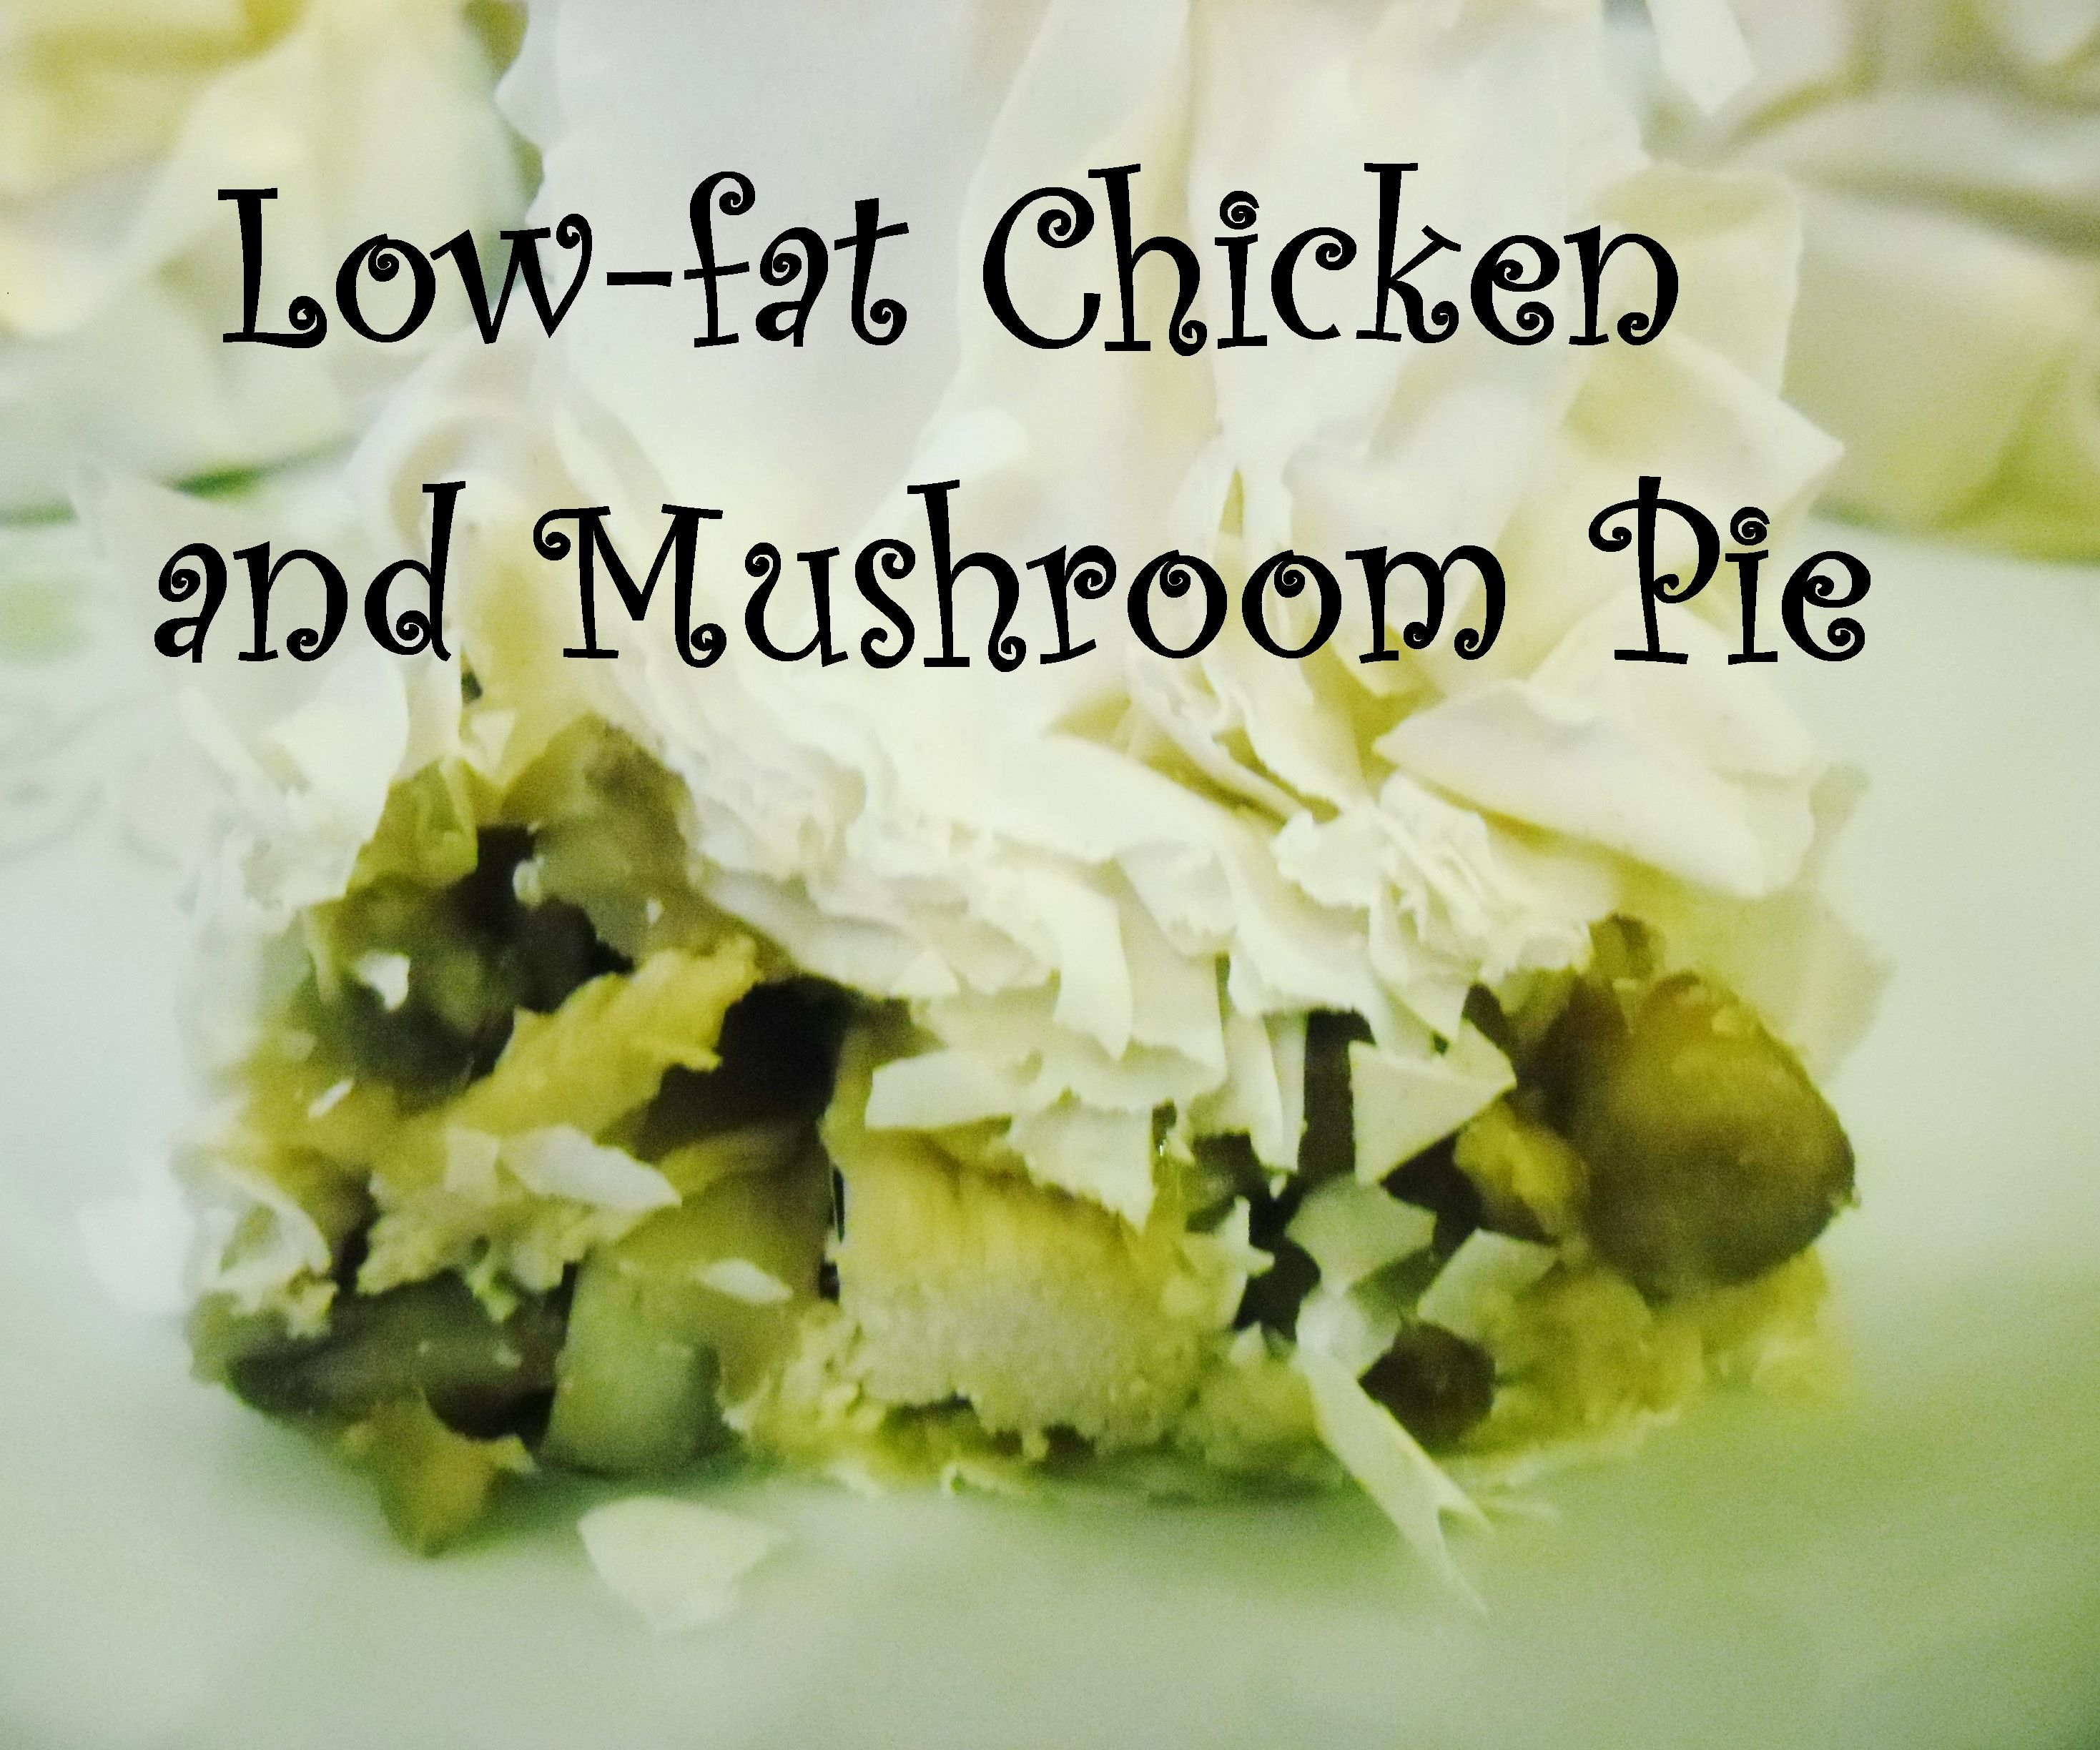 Low fat Chicken and Mushroom Pies